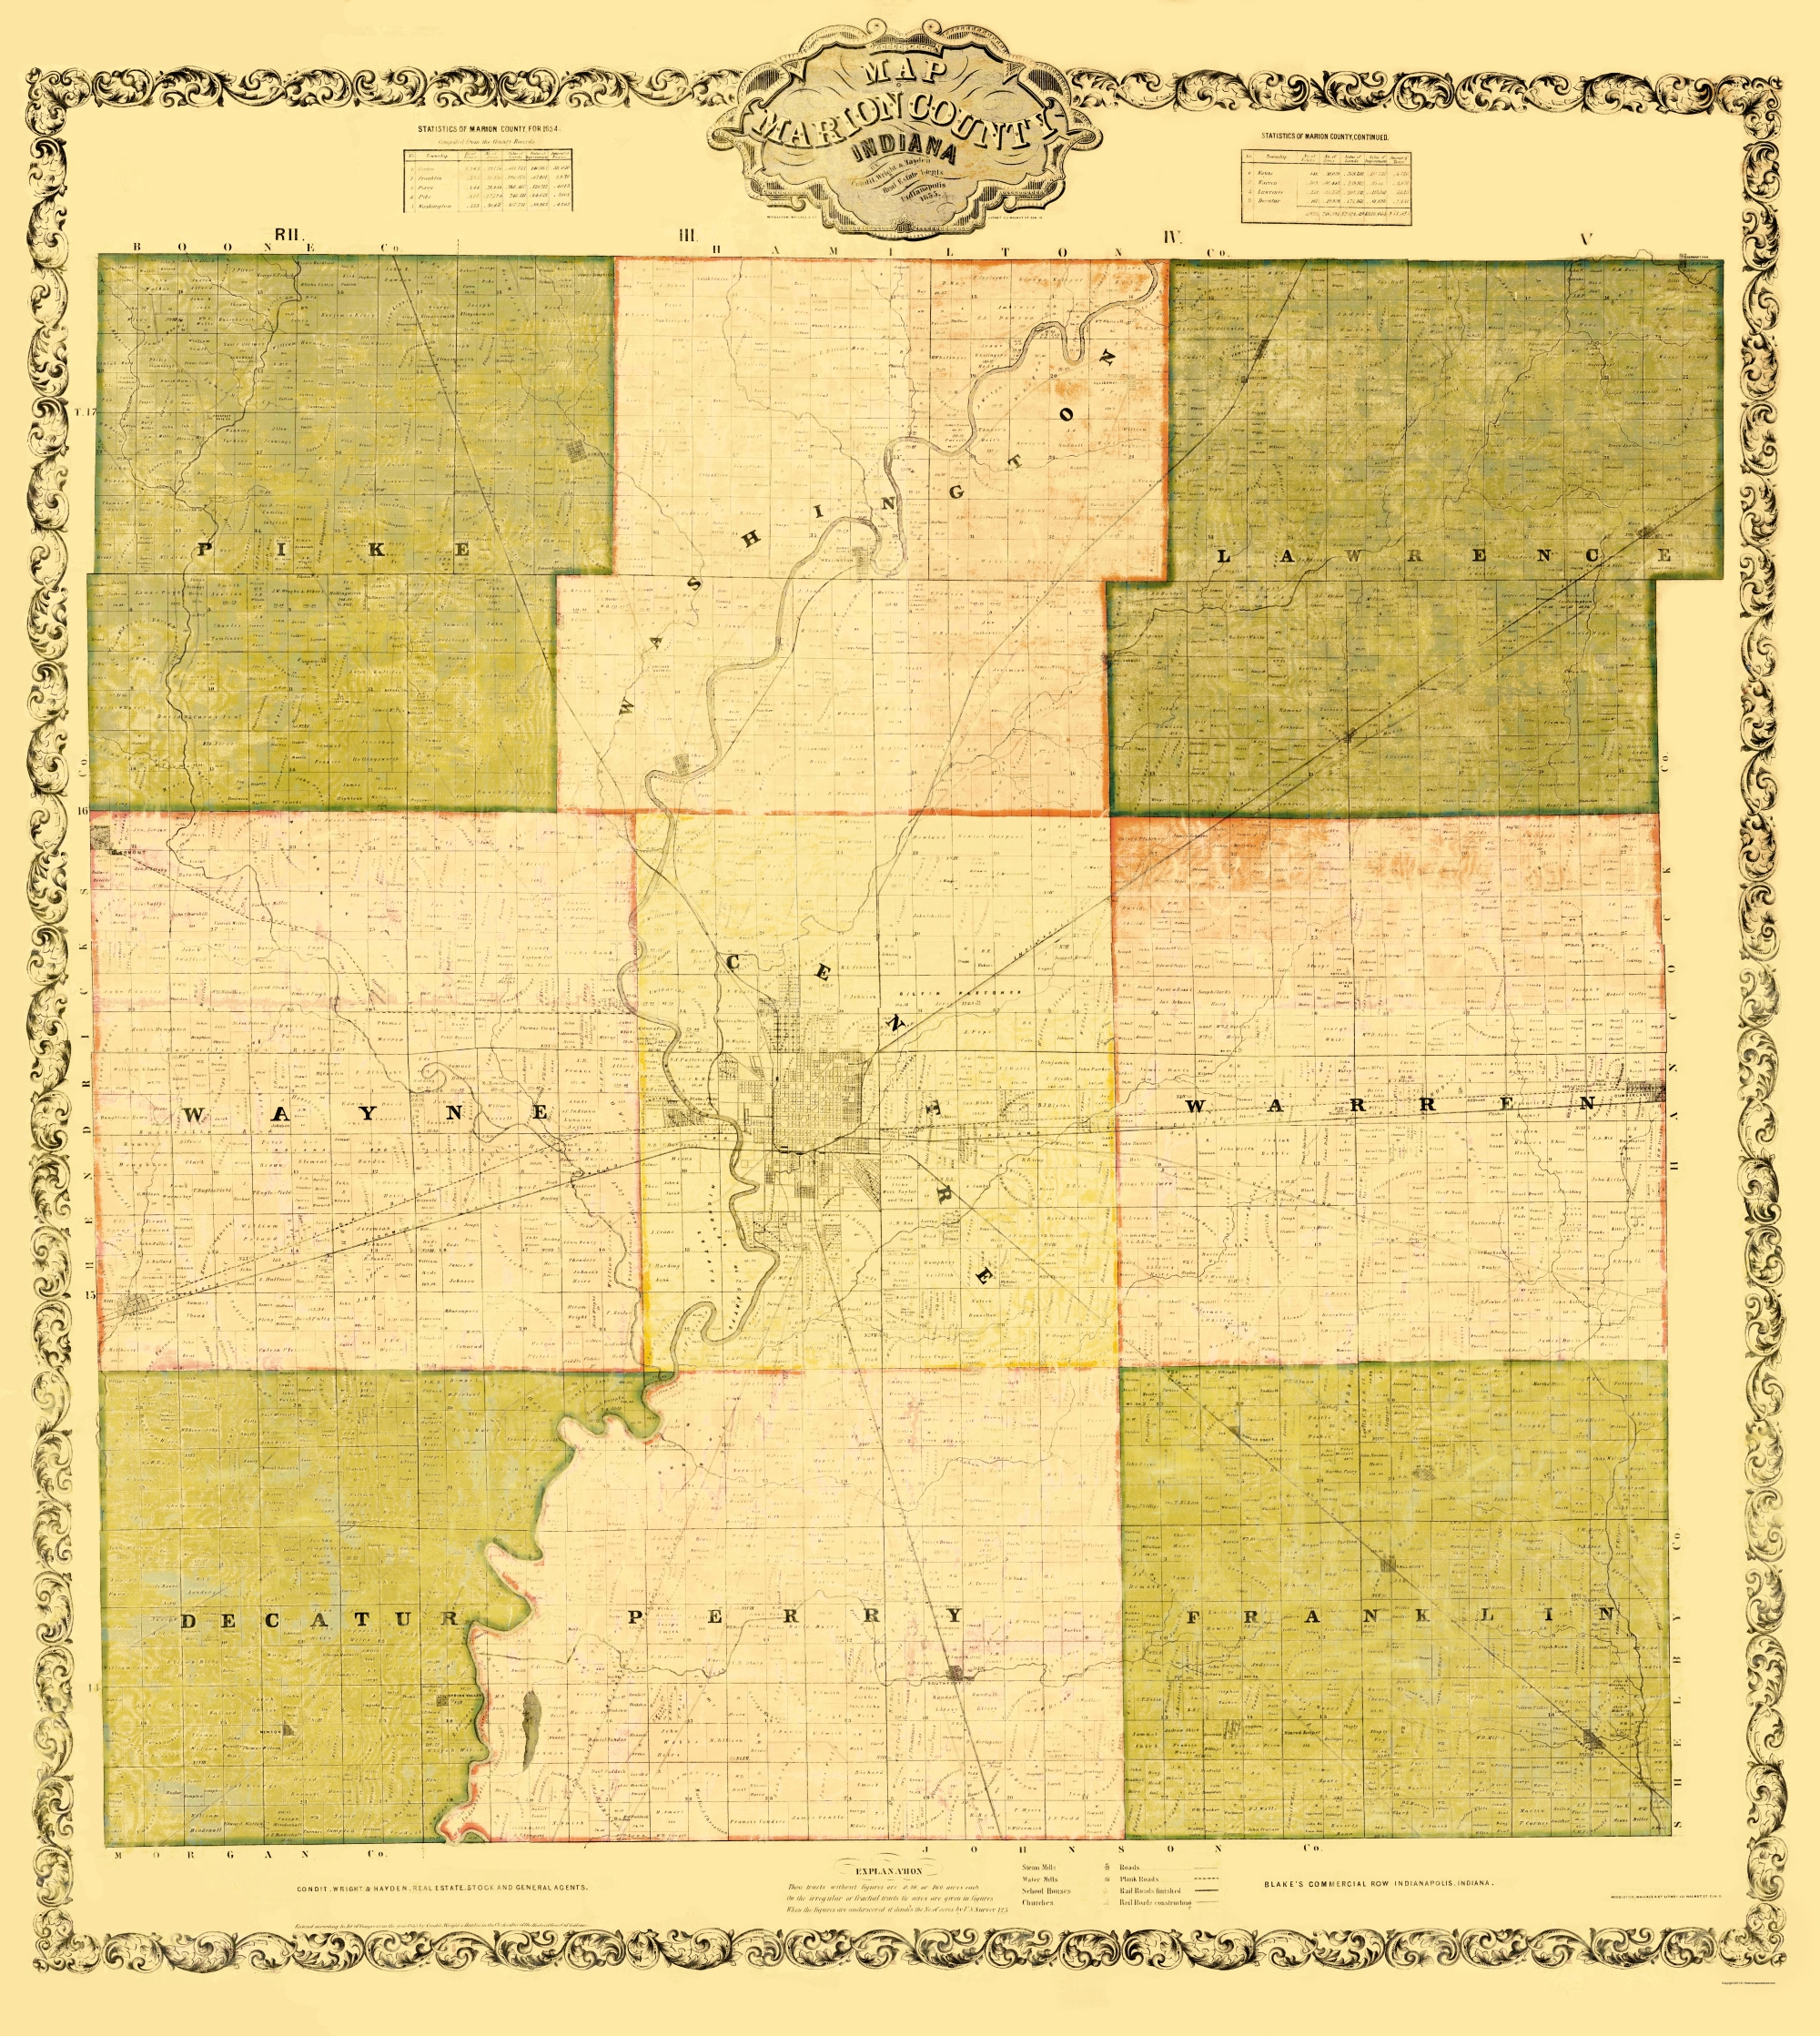 1855 Farm Line Map of Marion County Indiana Indianapolis